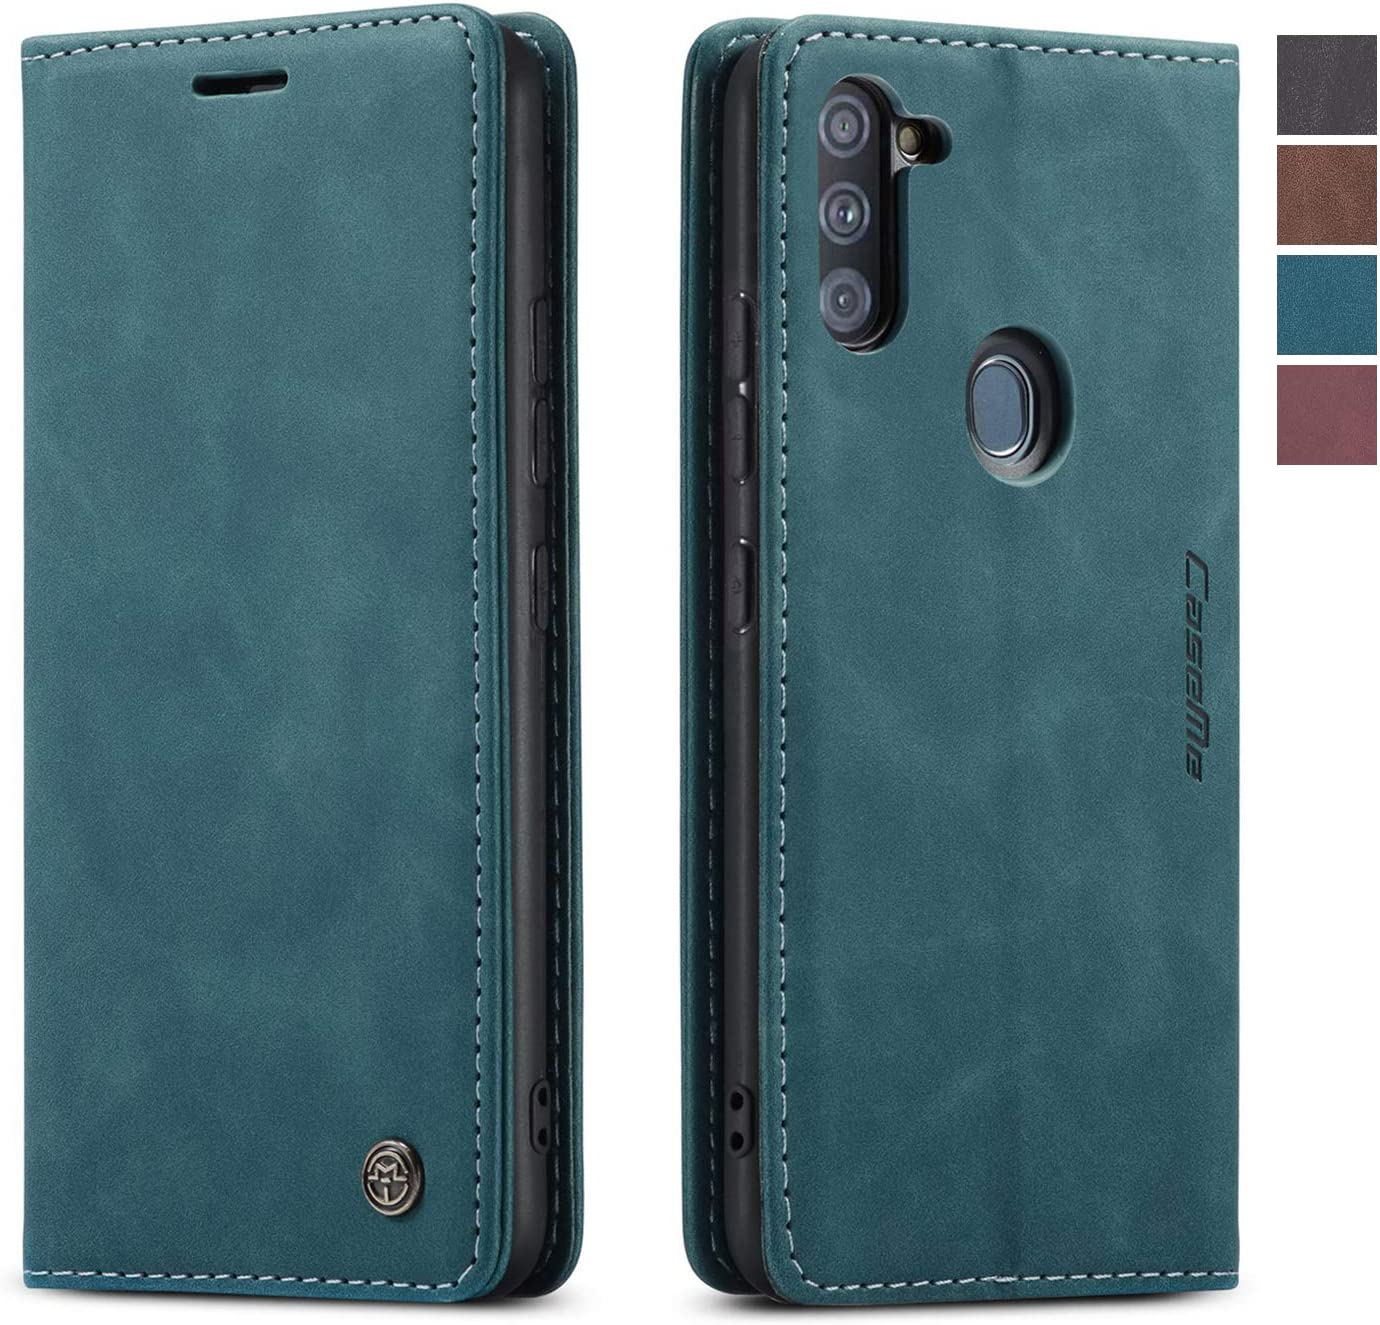 Samsung Galaxy A11 Case,Galaxy A11 Wallet Case with Card Holder,Magnetic Stand Leather Flip Case Cover for Samsung Galaxy A11(2020) 6.4 inch (Blue)